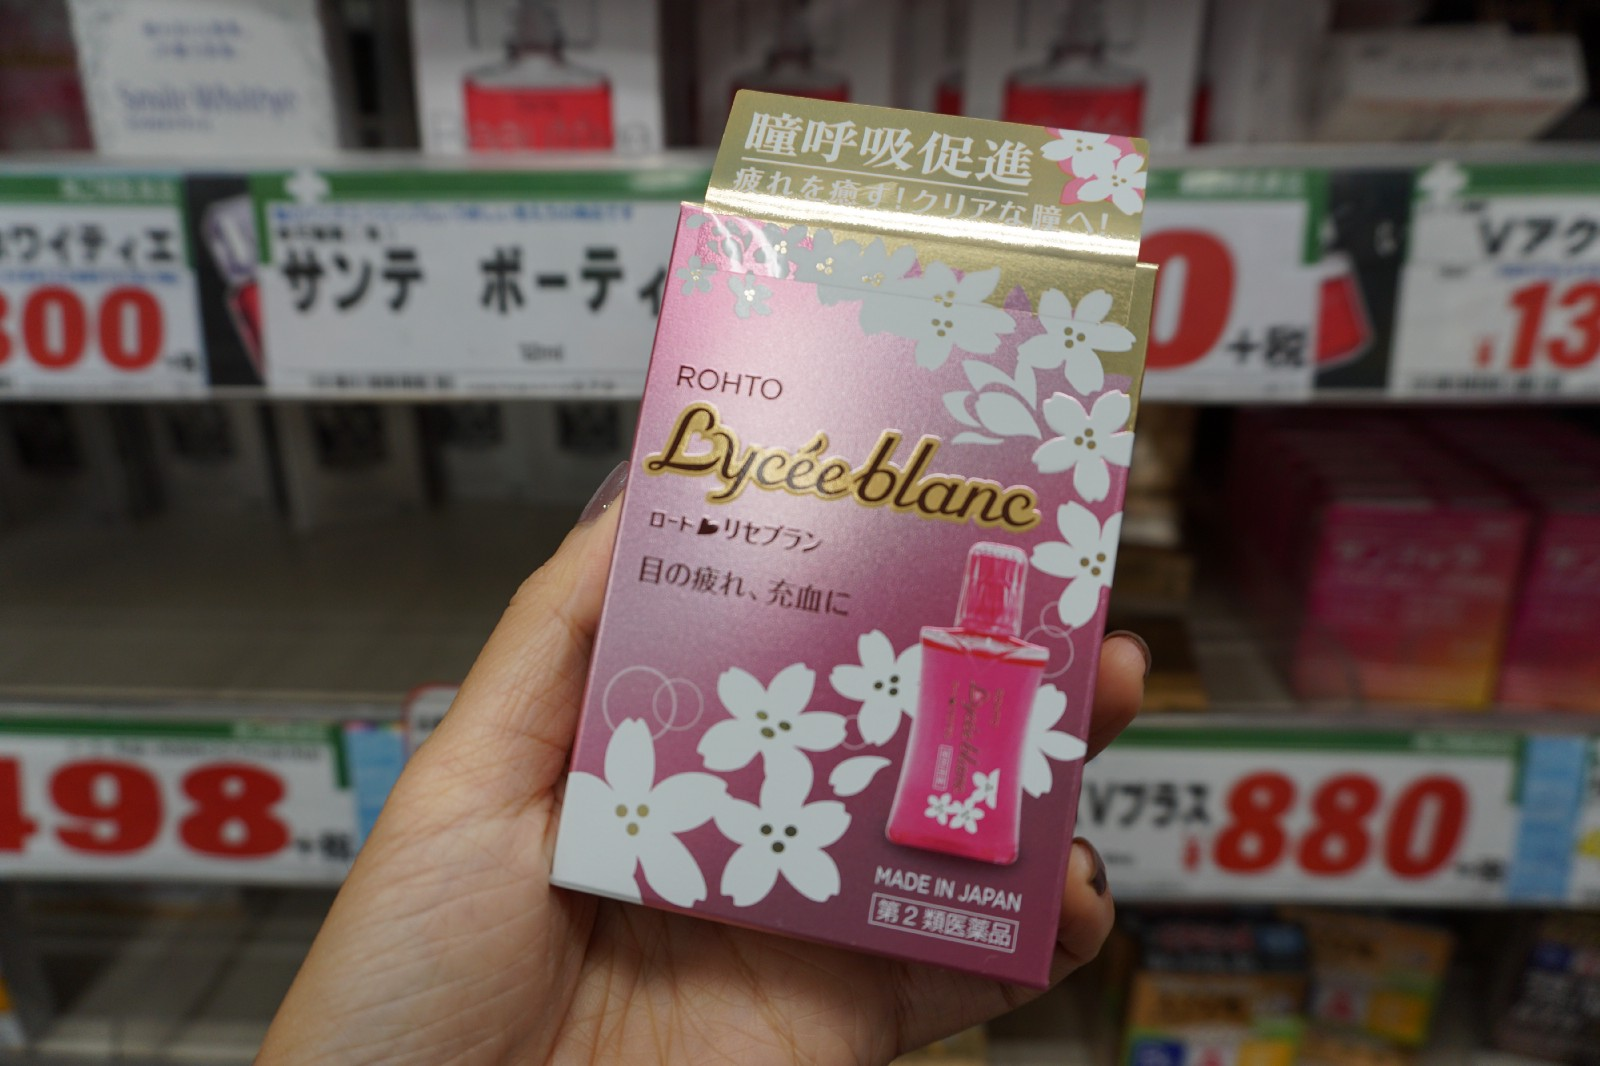 Rohto Lyceeblanc in a beautiful cherry blossom design package